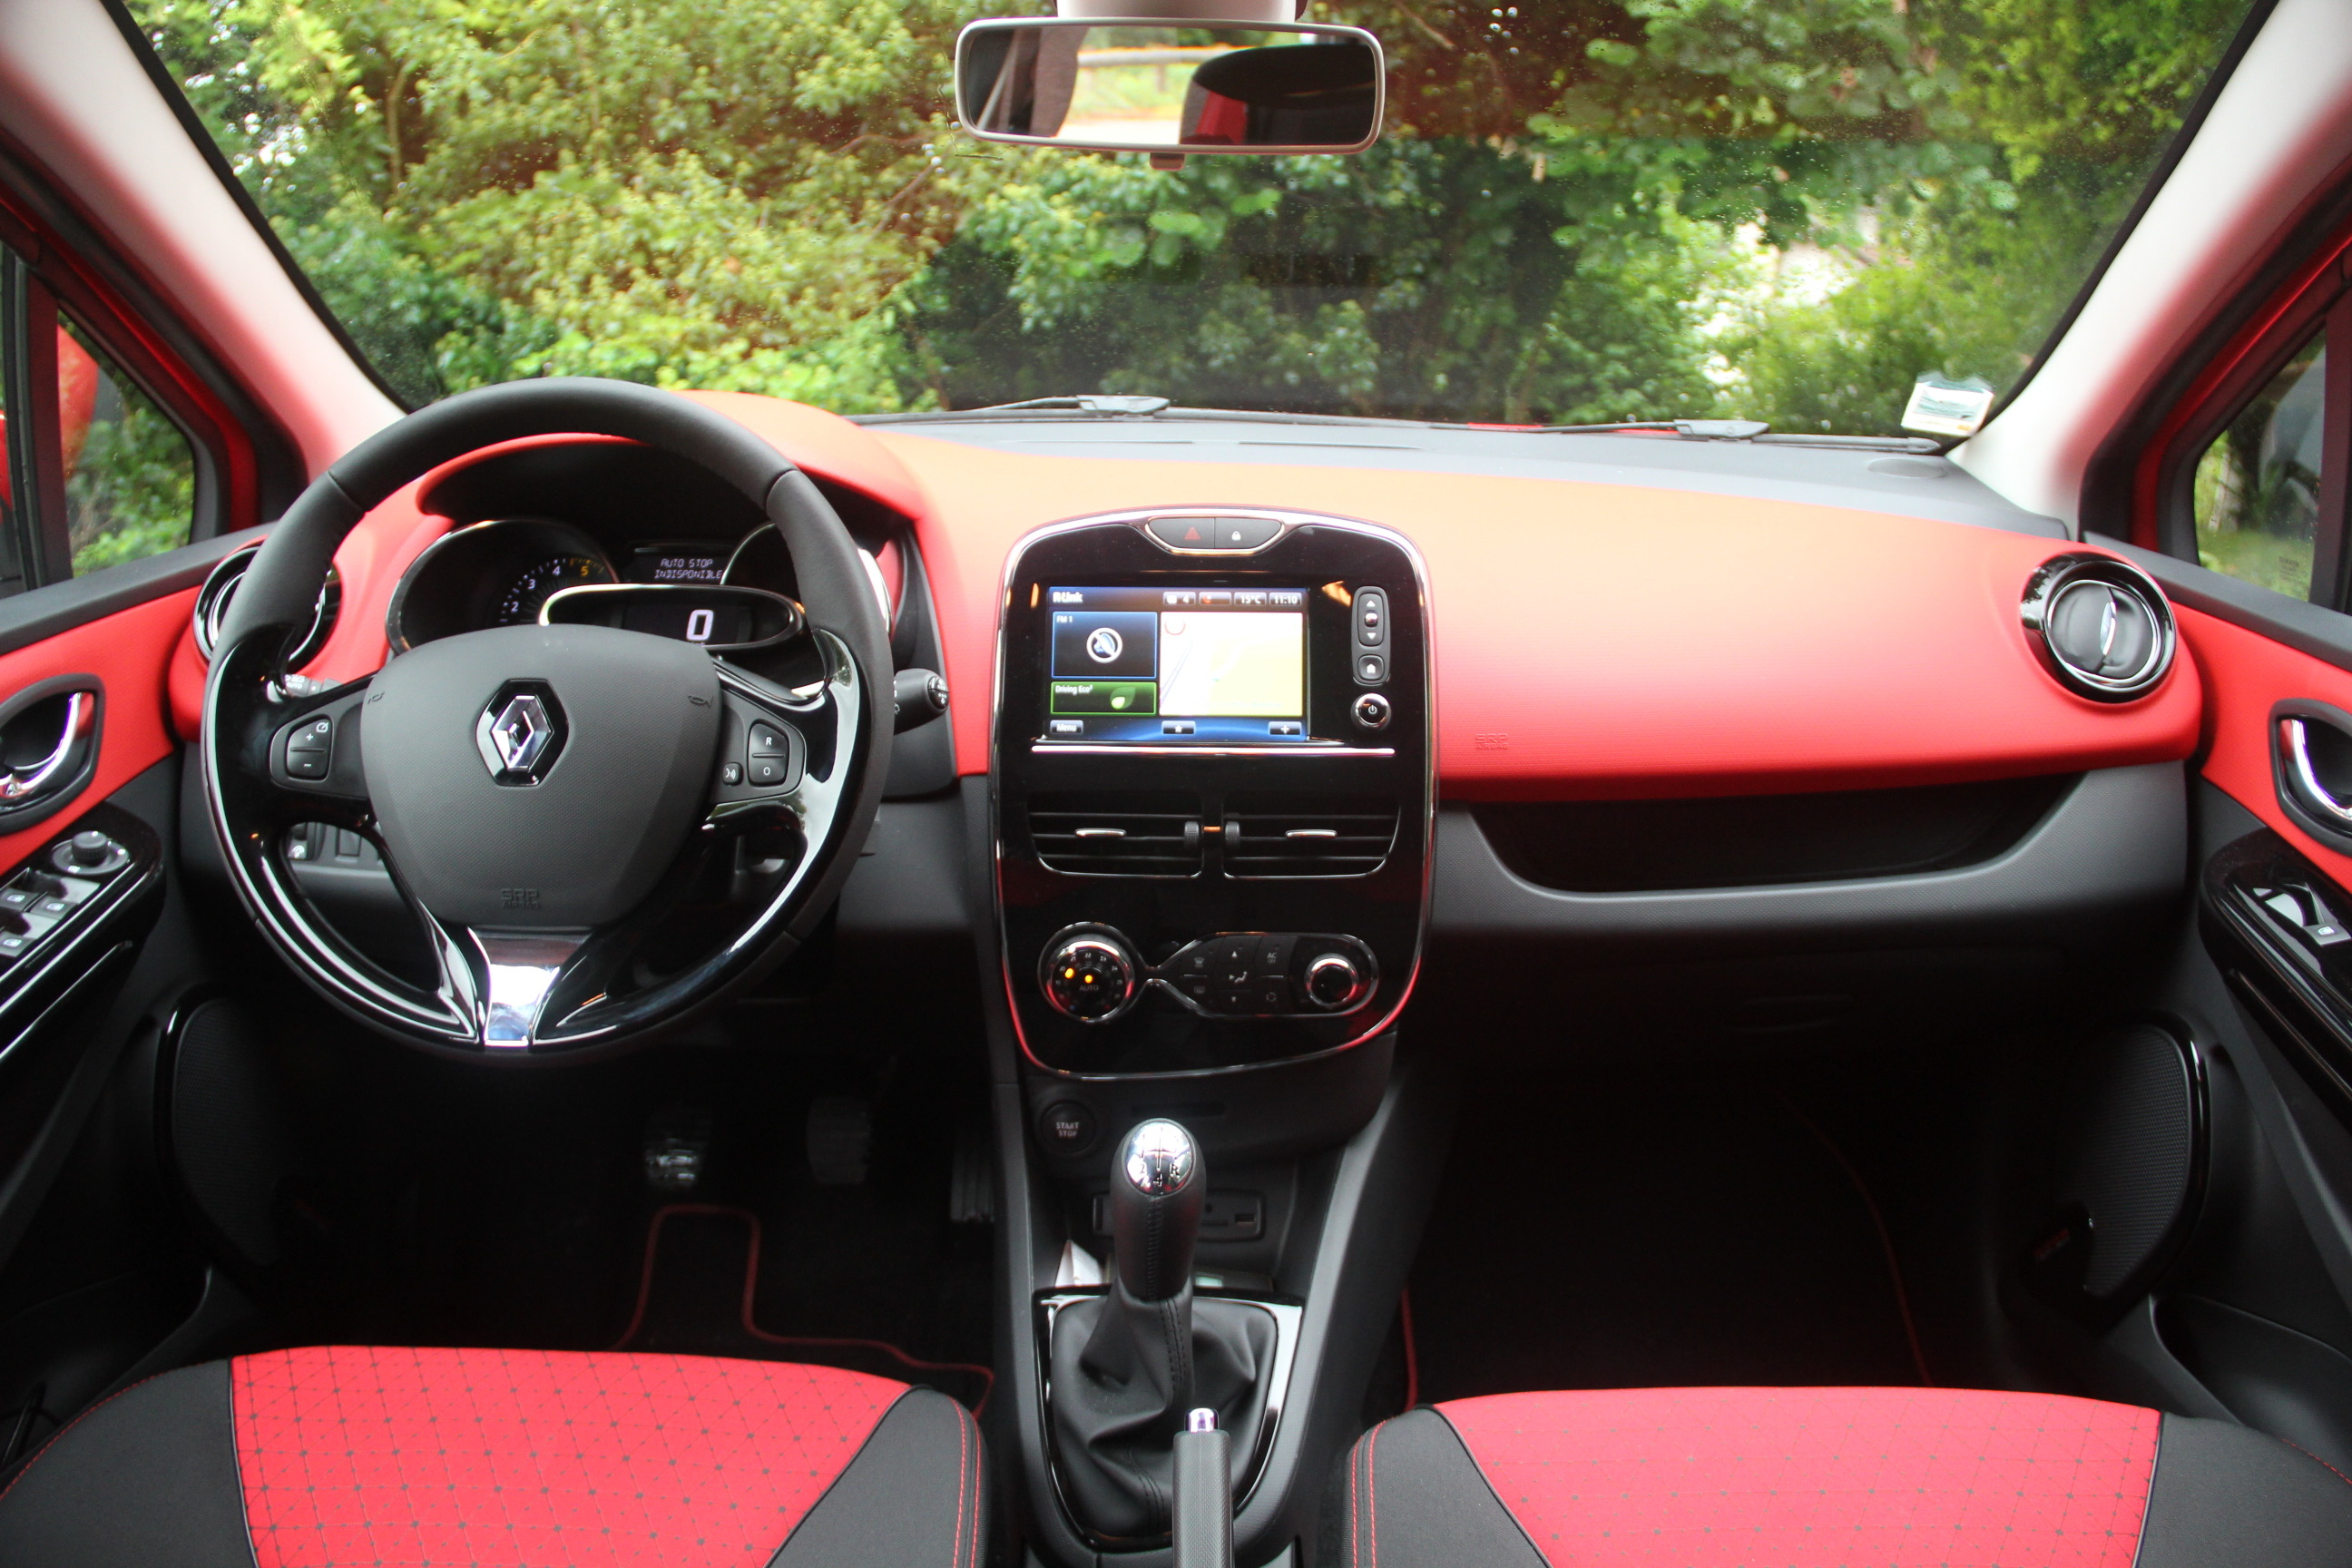 essai renault clio dci 90 ch championne de france. Black Bedroom Furniture Sets. Home Design Ideas